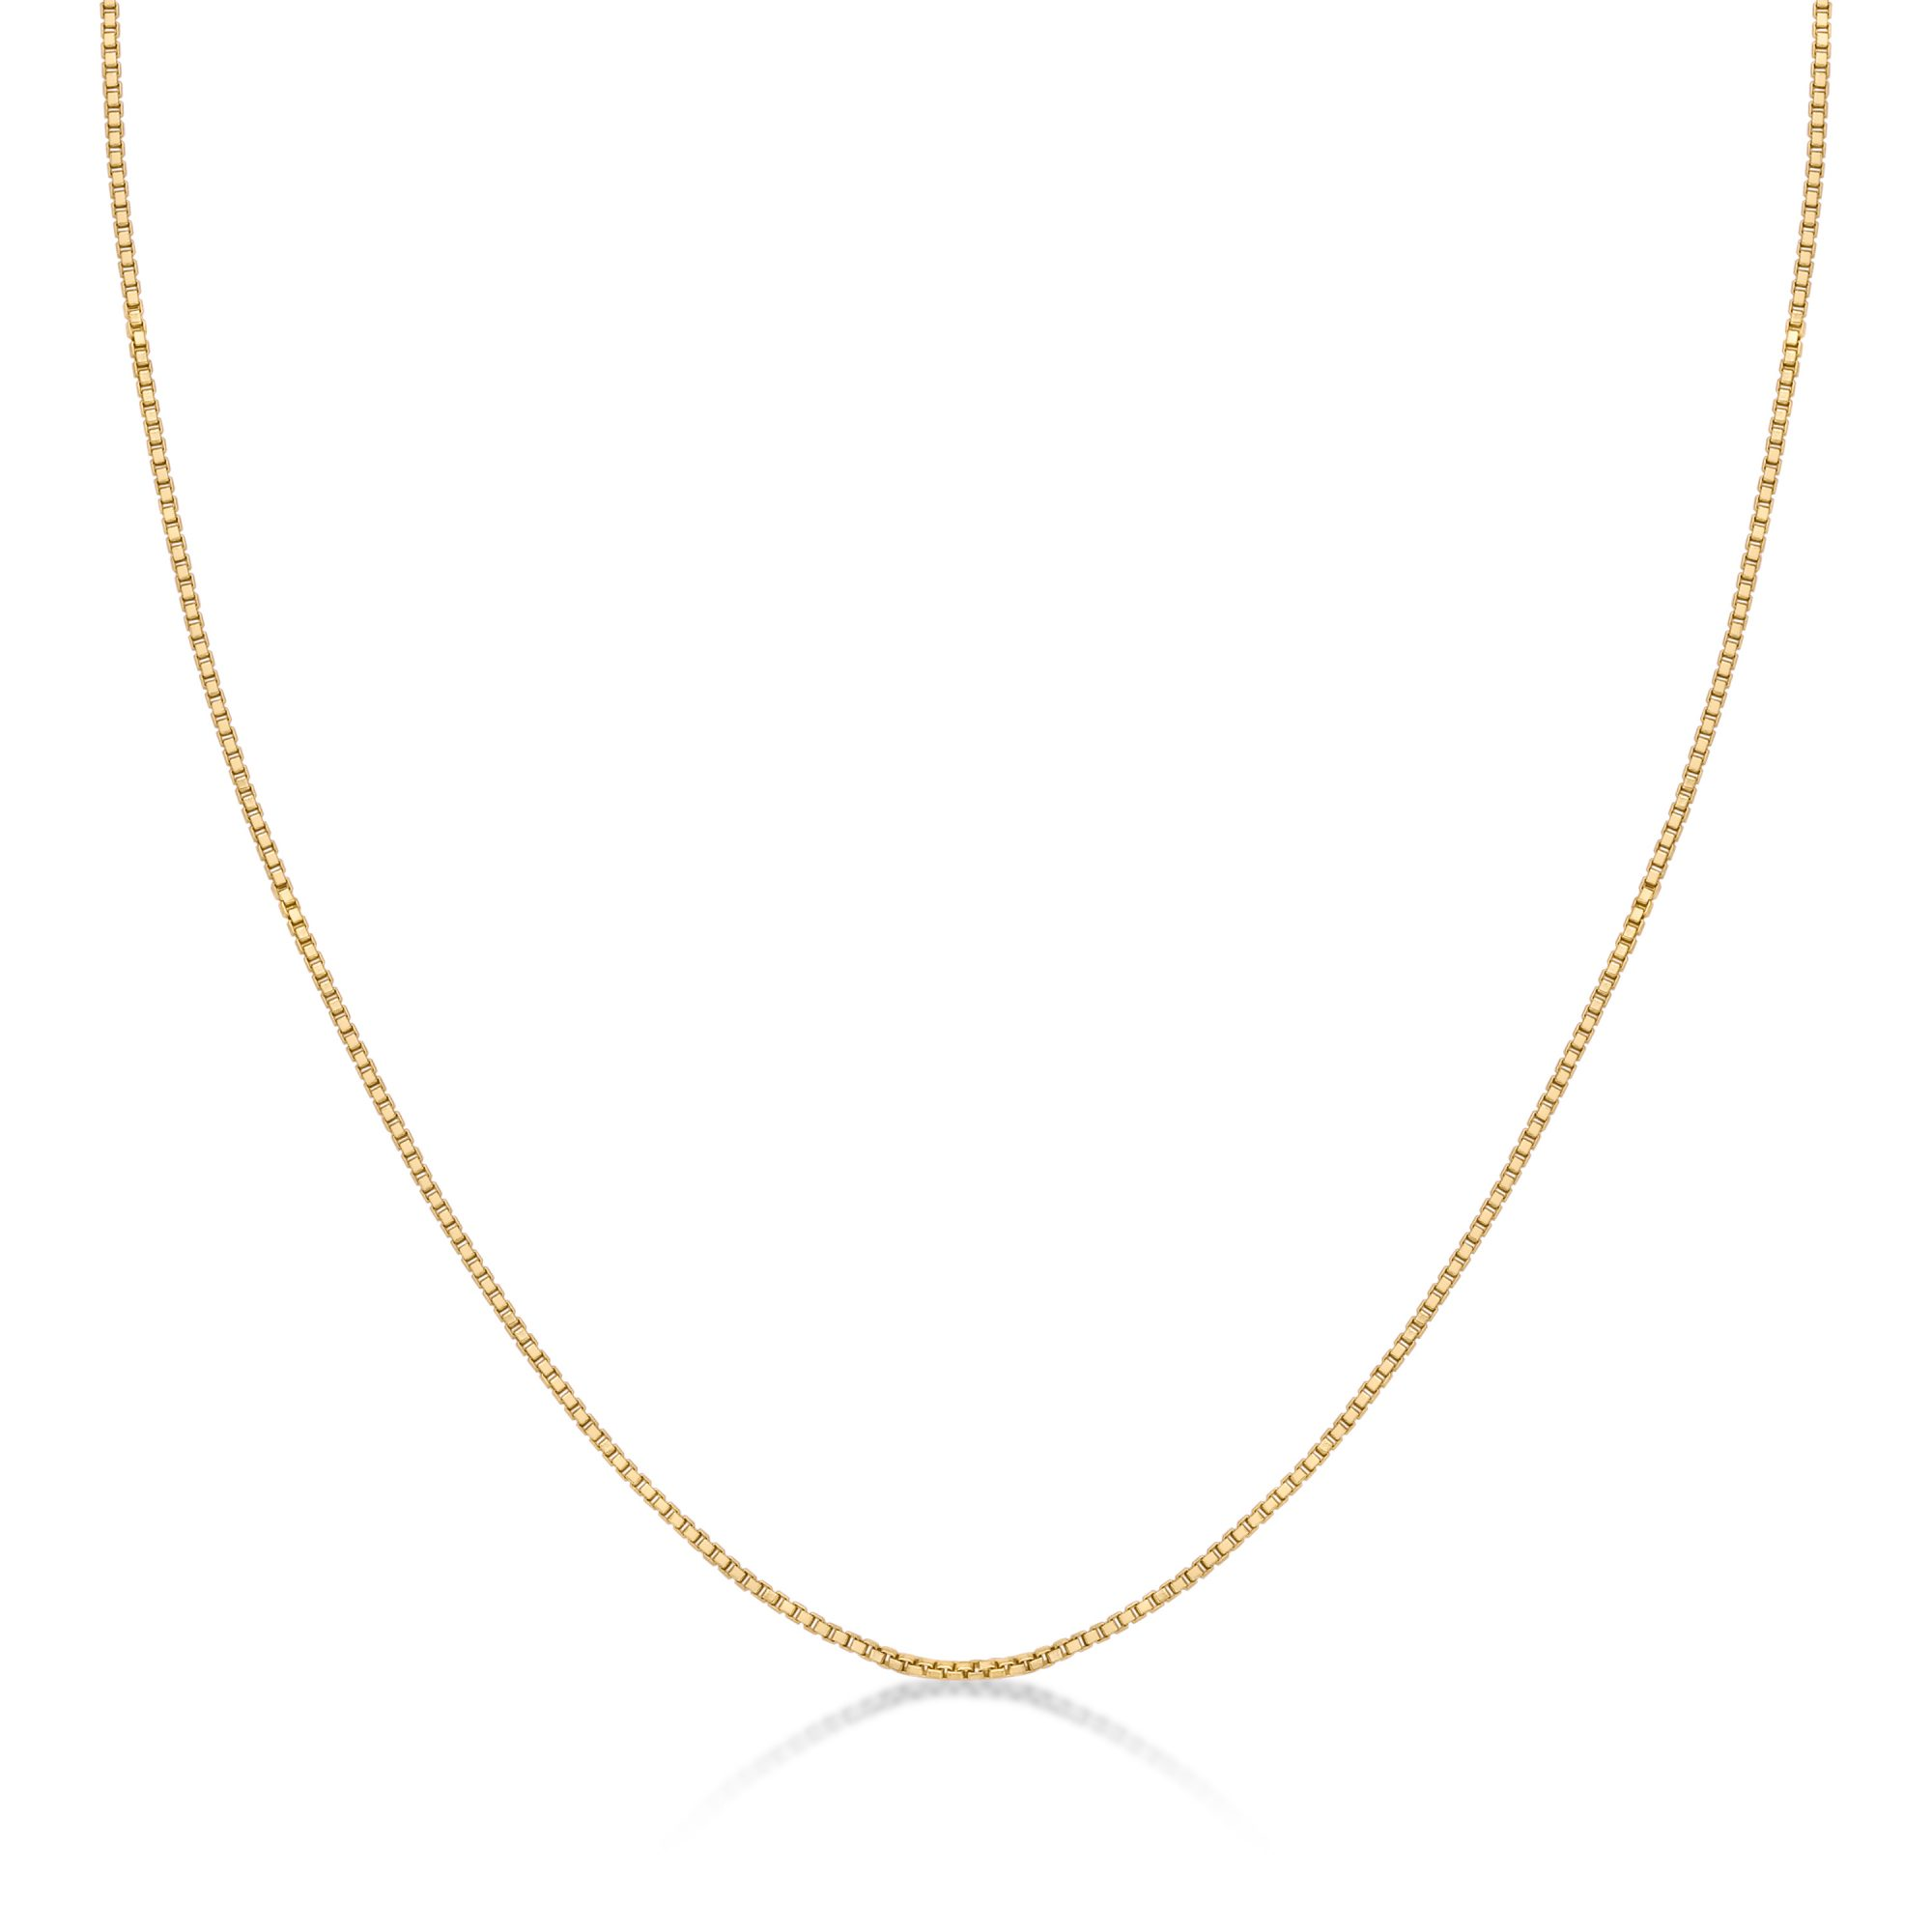 925 Yellow Sterling Silver Replacement 0.6 MM Box Chain - 18 inch with Spring Ring Clasp